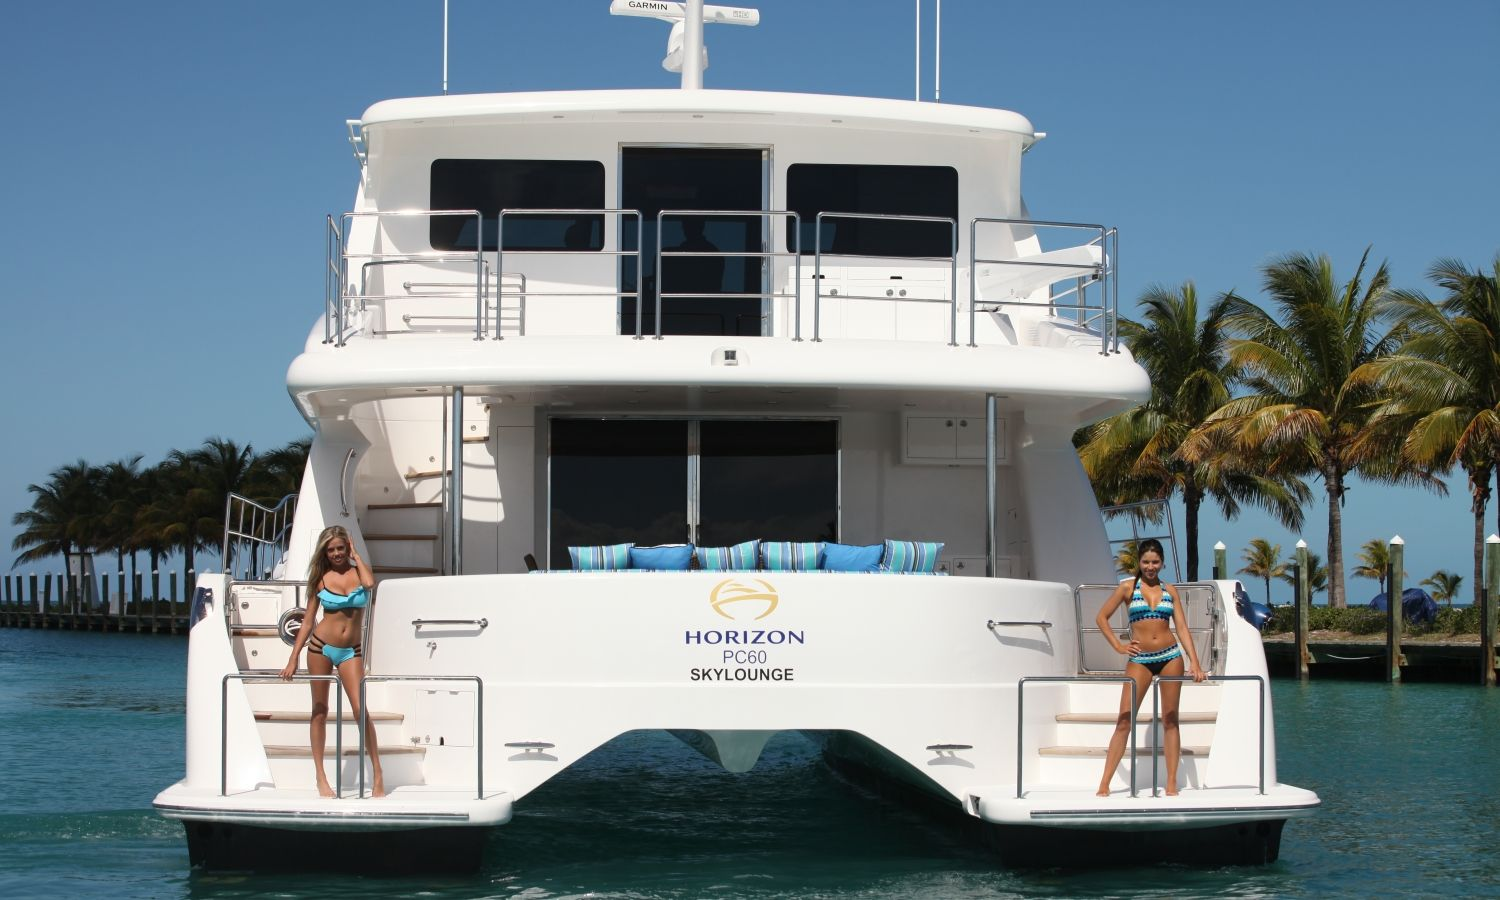 Horizon Power Catamarans Are The Title Sponsors For Southern Boating Magazines Annual 2014 Swimsuit Issue Here Is A Ph Power Catamaran Catamaran Sailing Yacht